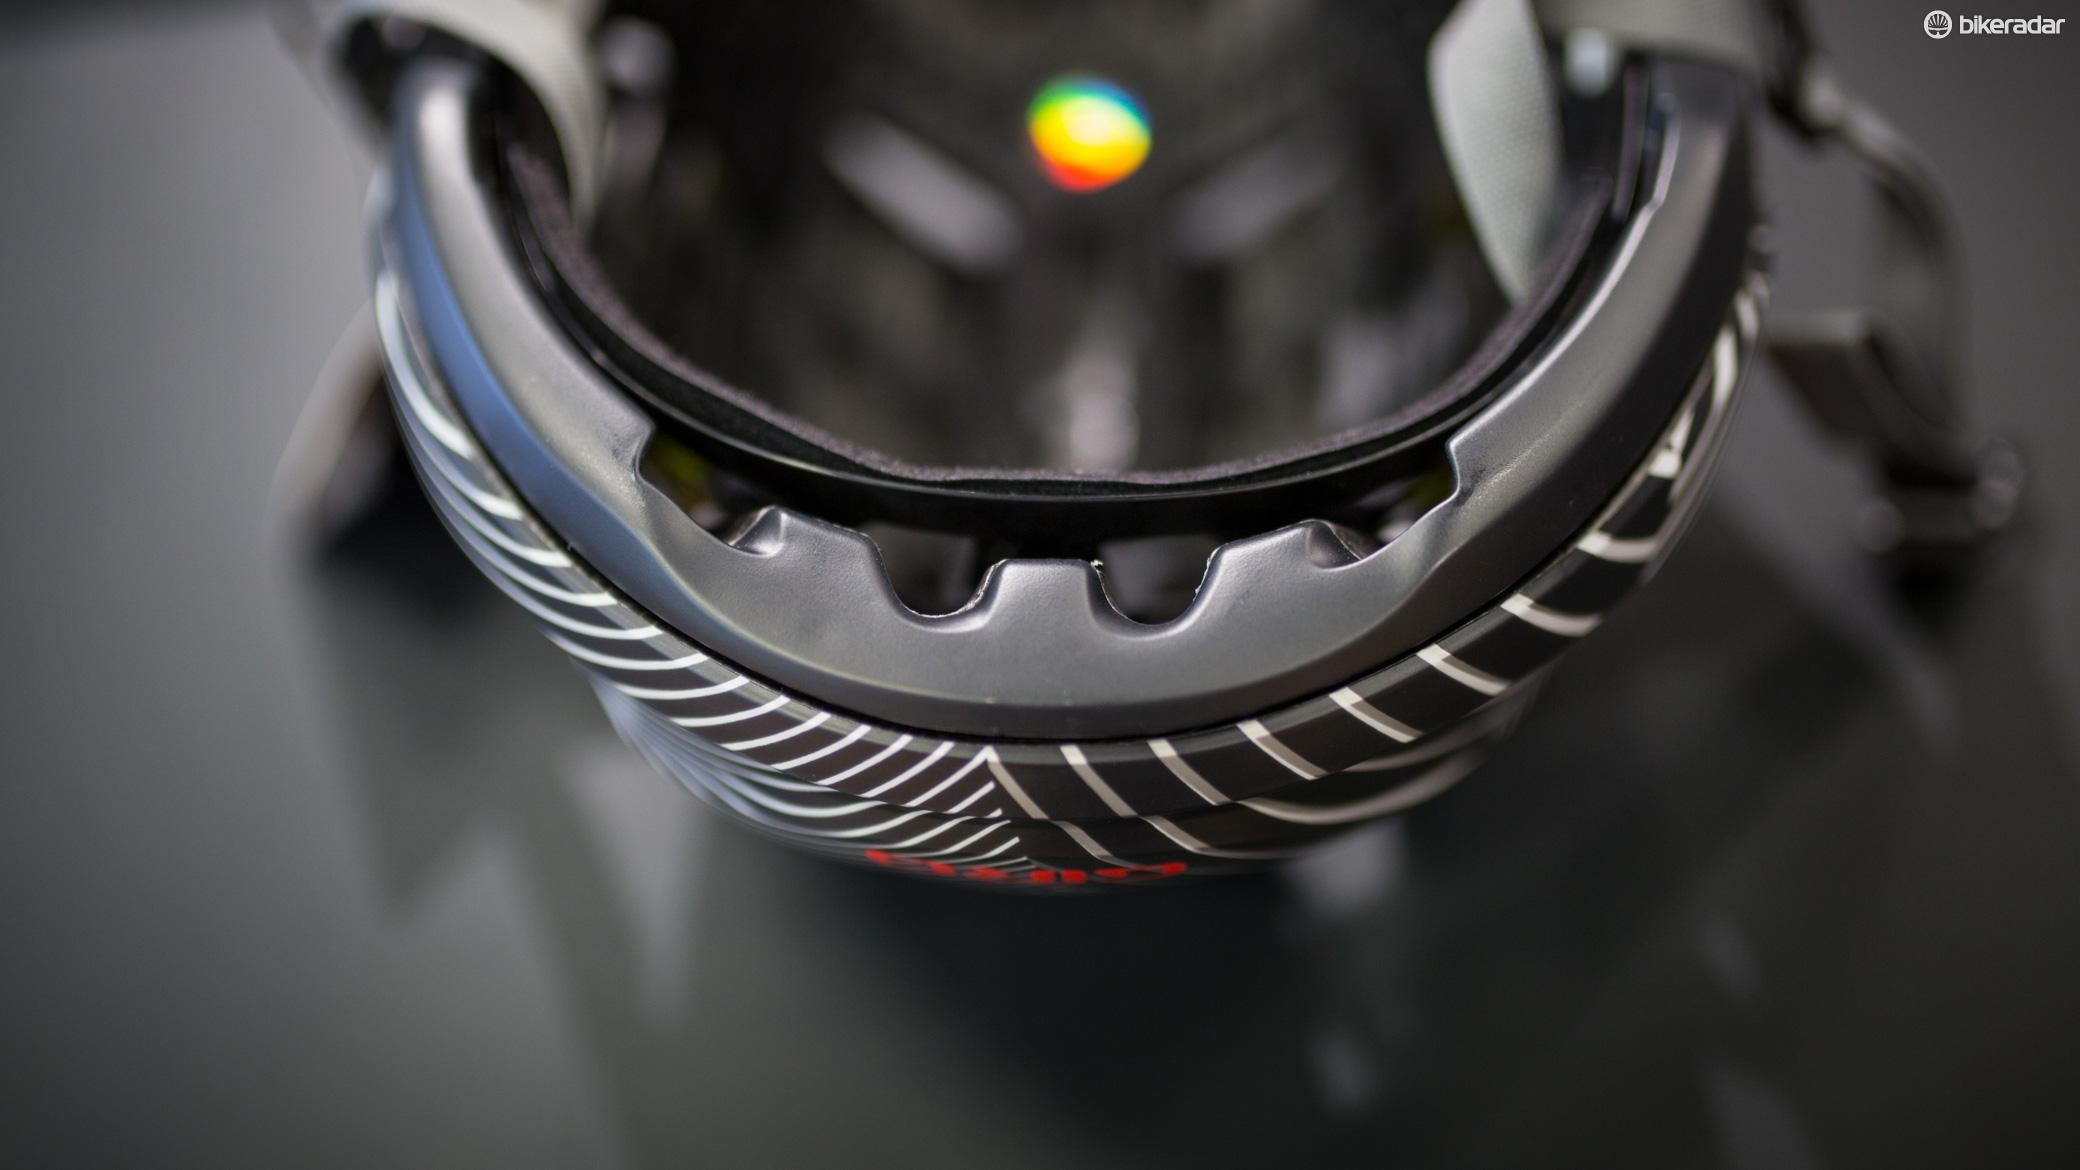 The MIPS liner is integrated into Giro's RocLoc 3 retention system, and it sits off the head for better ventilation